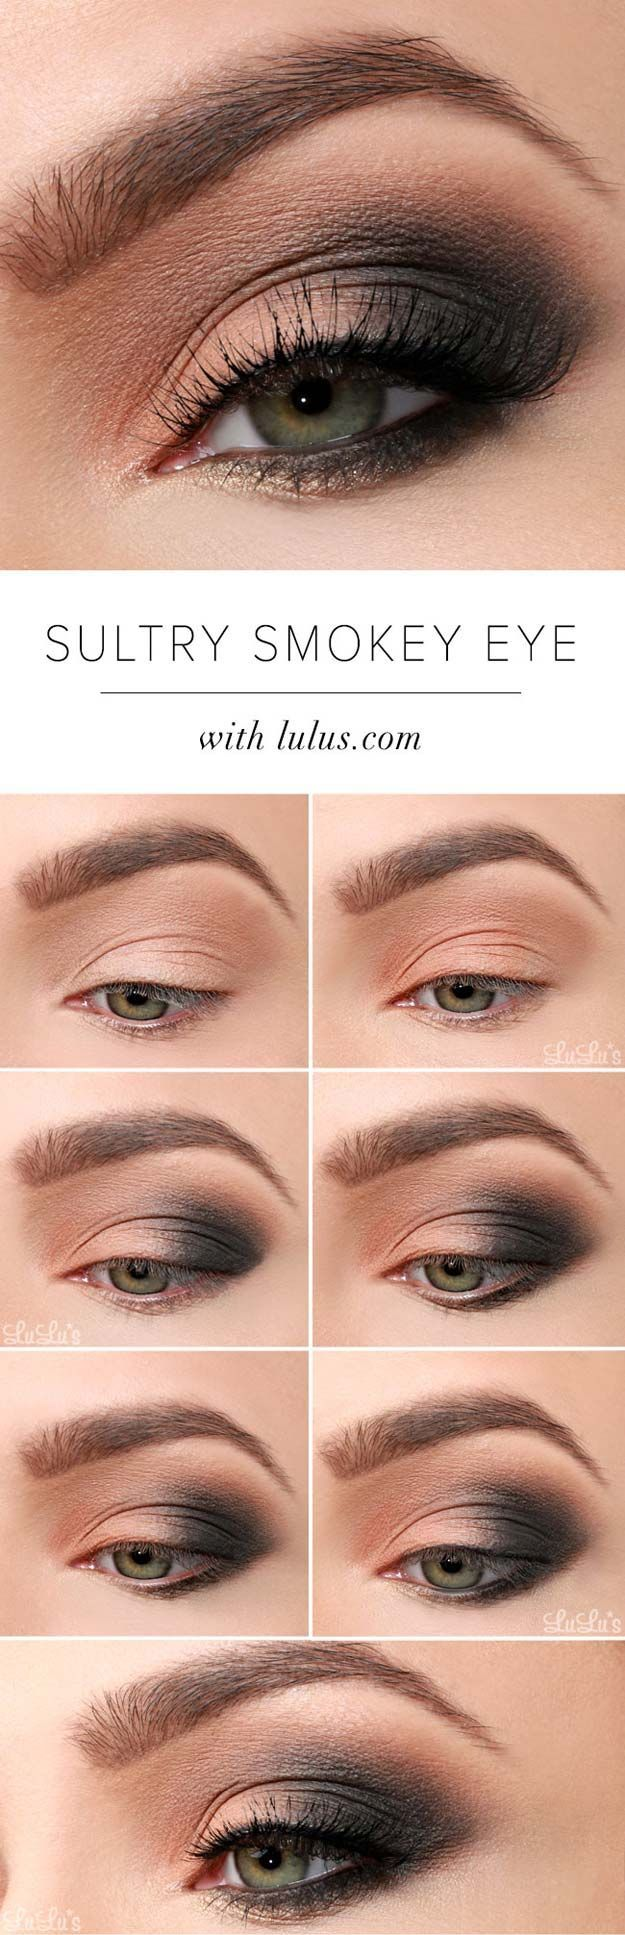 Sexy Eye Makeup Tutorials - Sultry Smokey Eye Makeup Tutorial - Easy Guides on H...